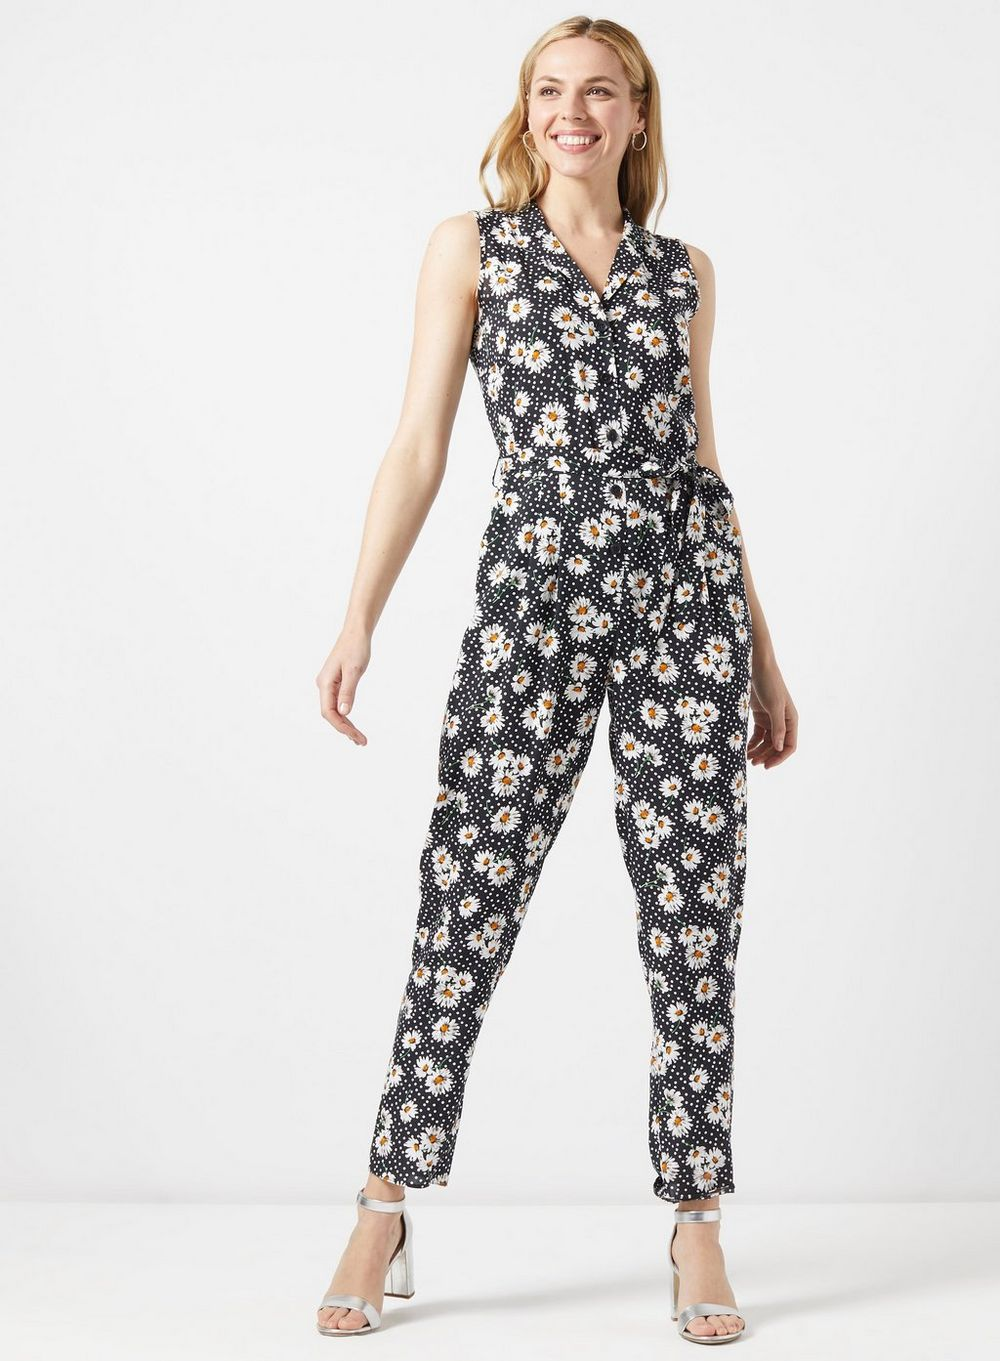 dorothy perkins Daisy Print Collared Jumpsuit